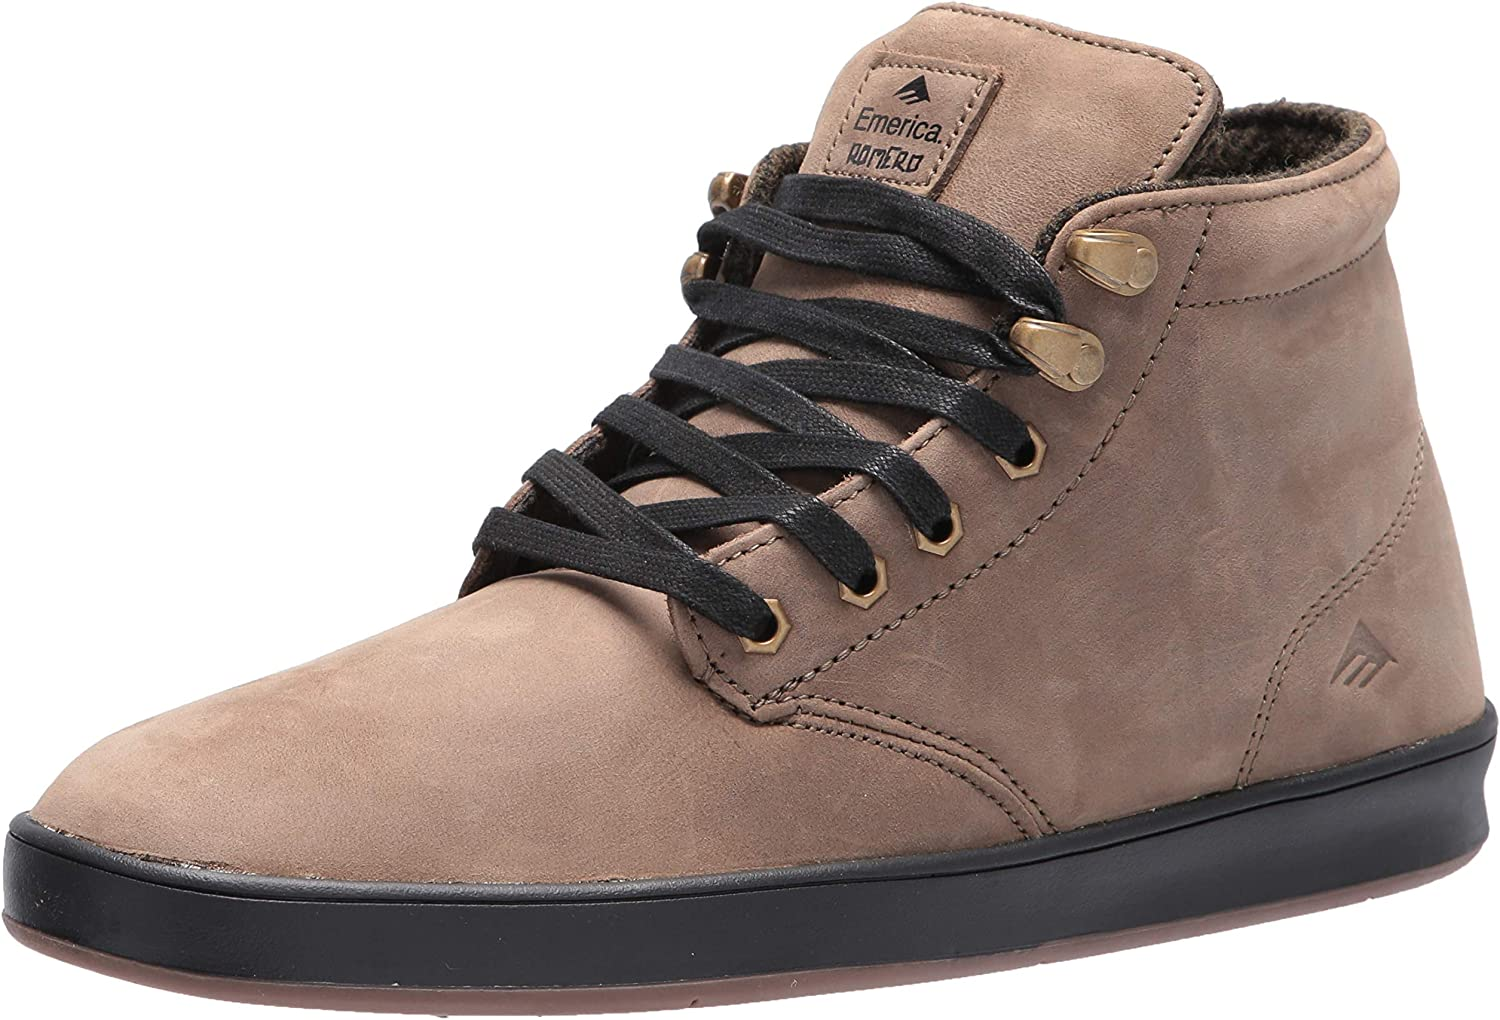 Emerica Men's Romero Laced High Top Skate Shoe